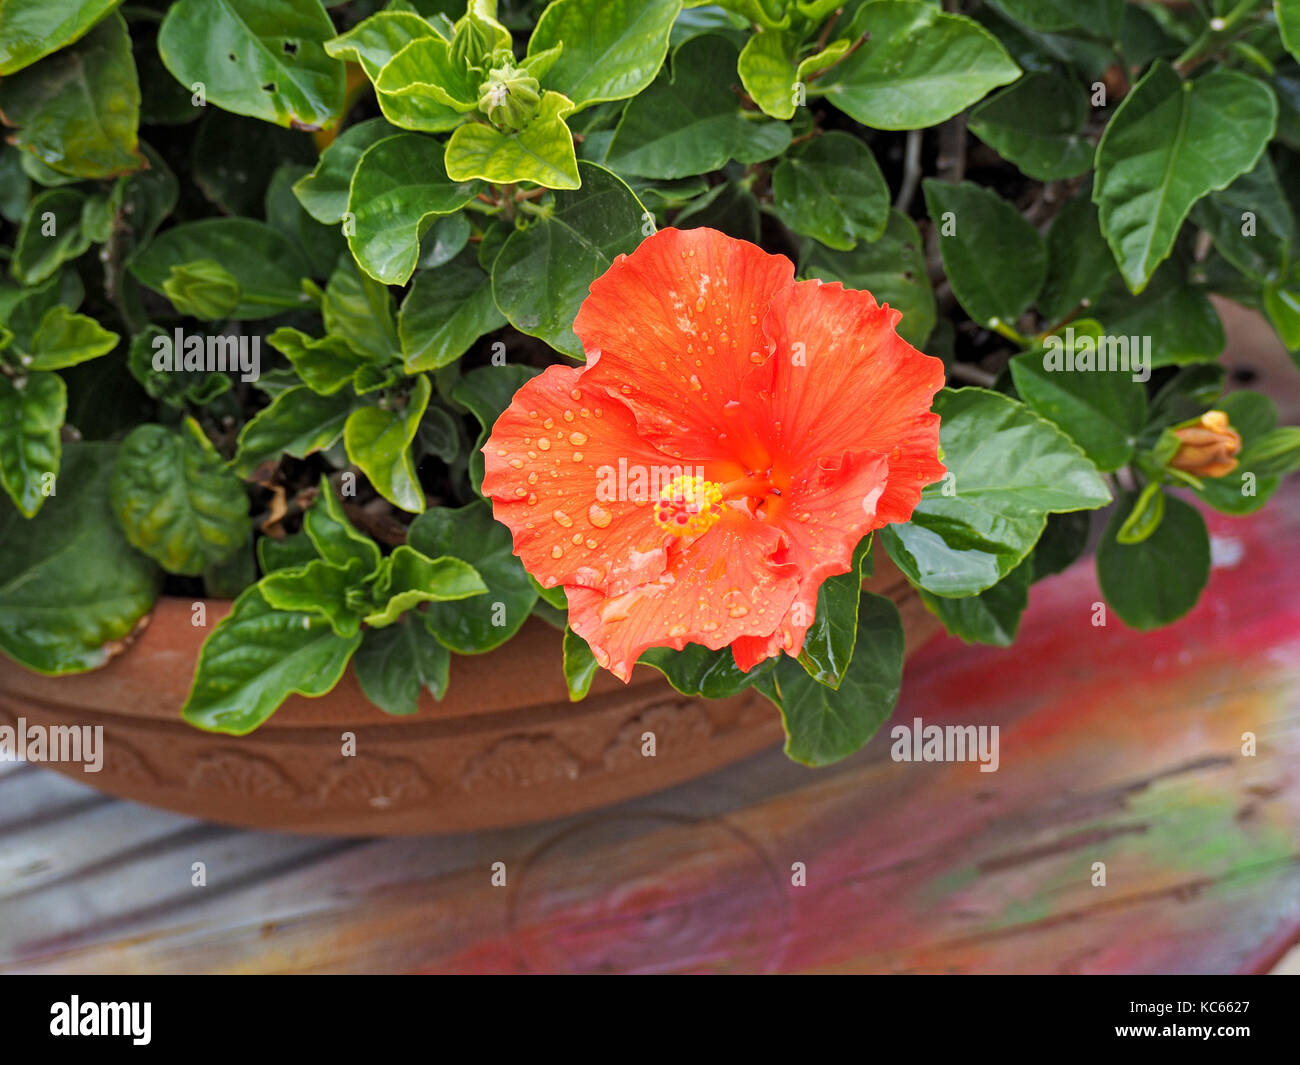 Red yellow flower of chinese hibiscus hibiscus rosa sinensis red yellow flower of chinese hibiscus hibiscus rosa sinensis china rose hawaiian hibiscus or shoe black plant growing in a pot in tuscany italy izmirmasajfo